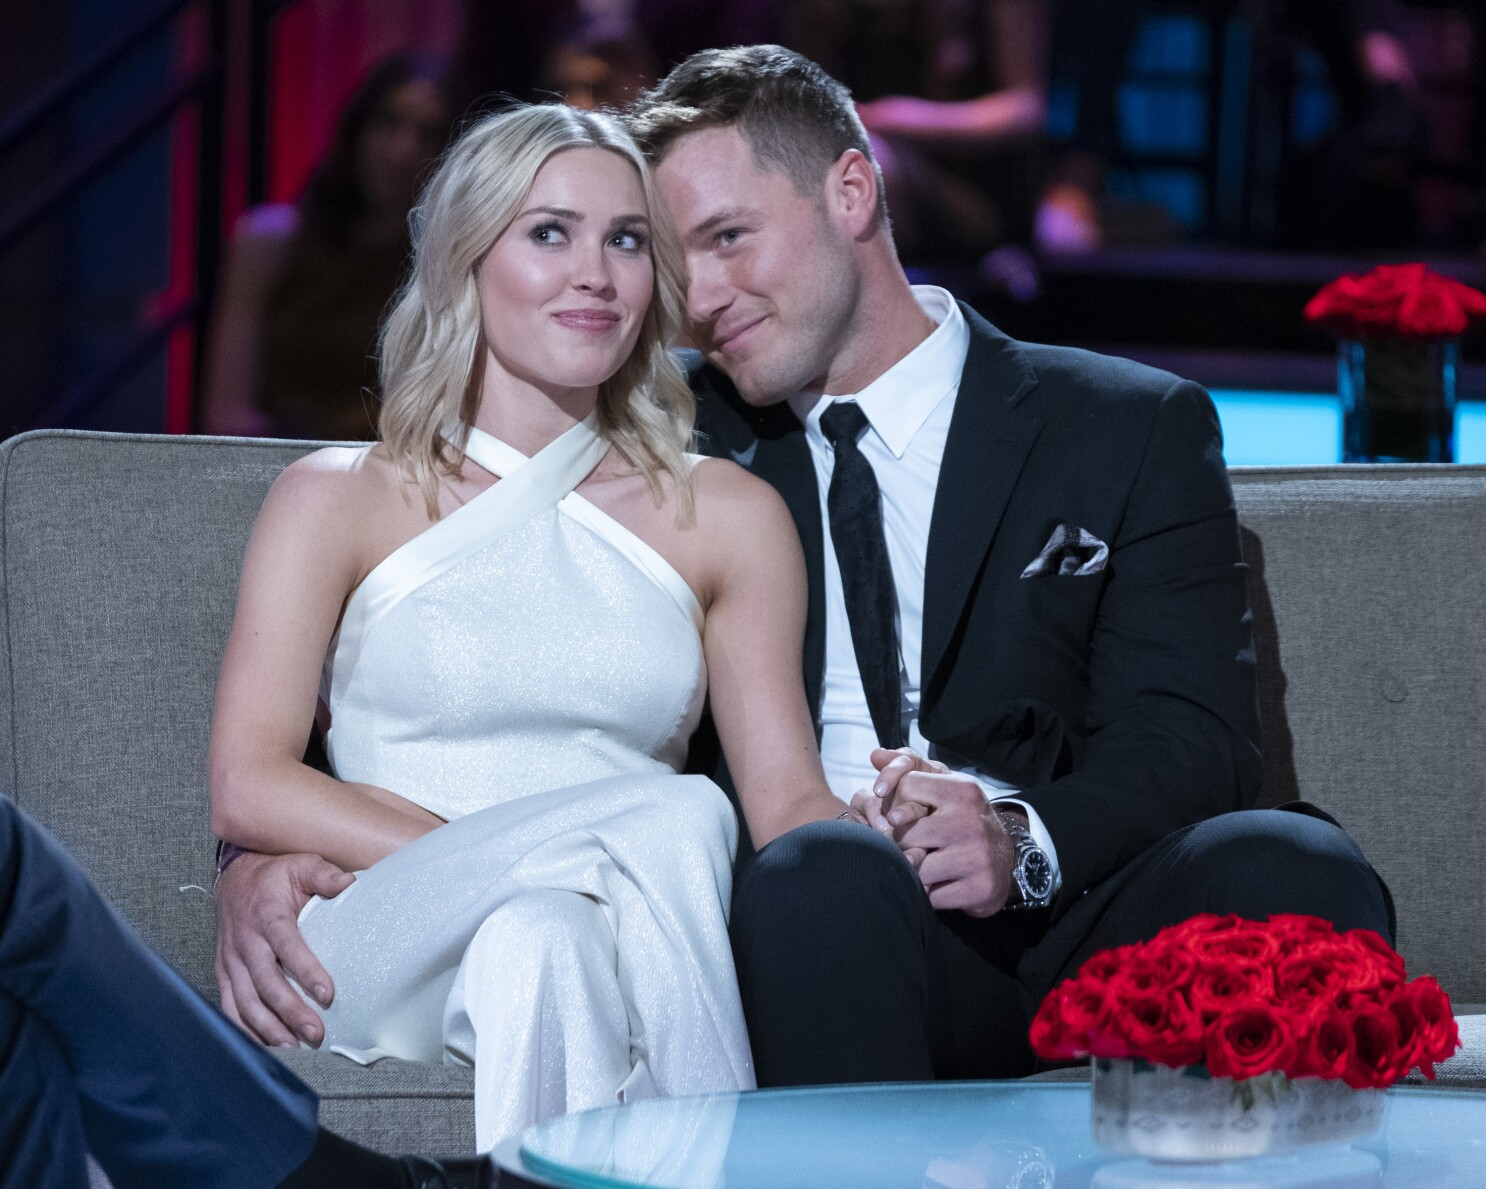 Bachelor Star Colton Underwood Hit With Restraining Order Los Angeles Times